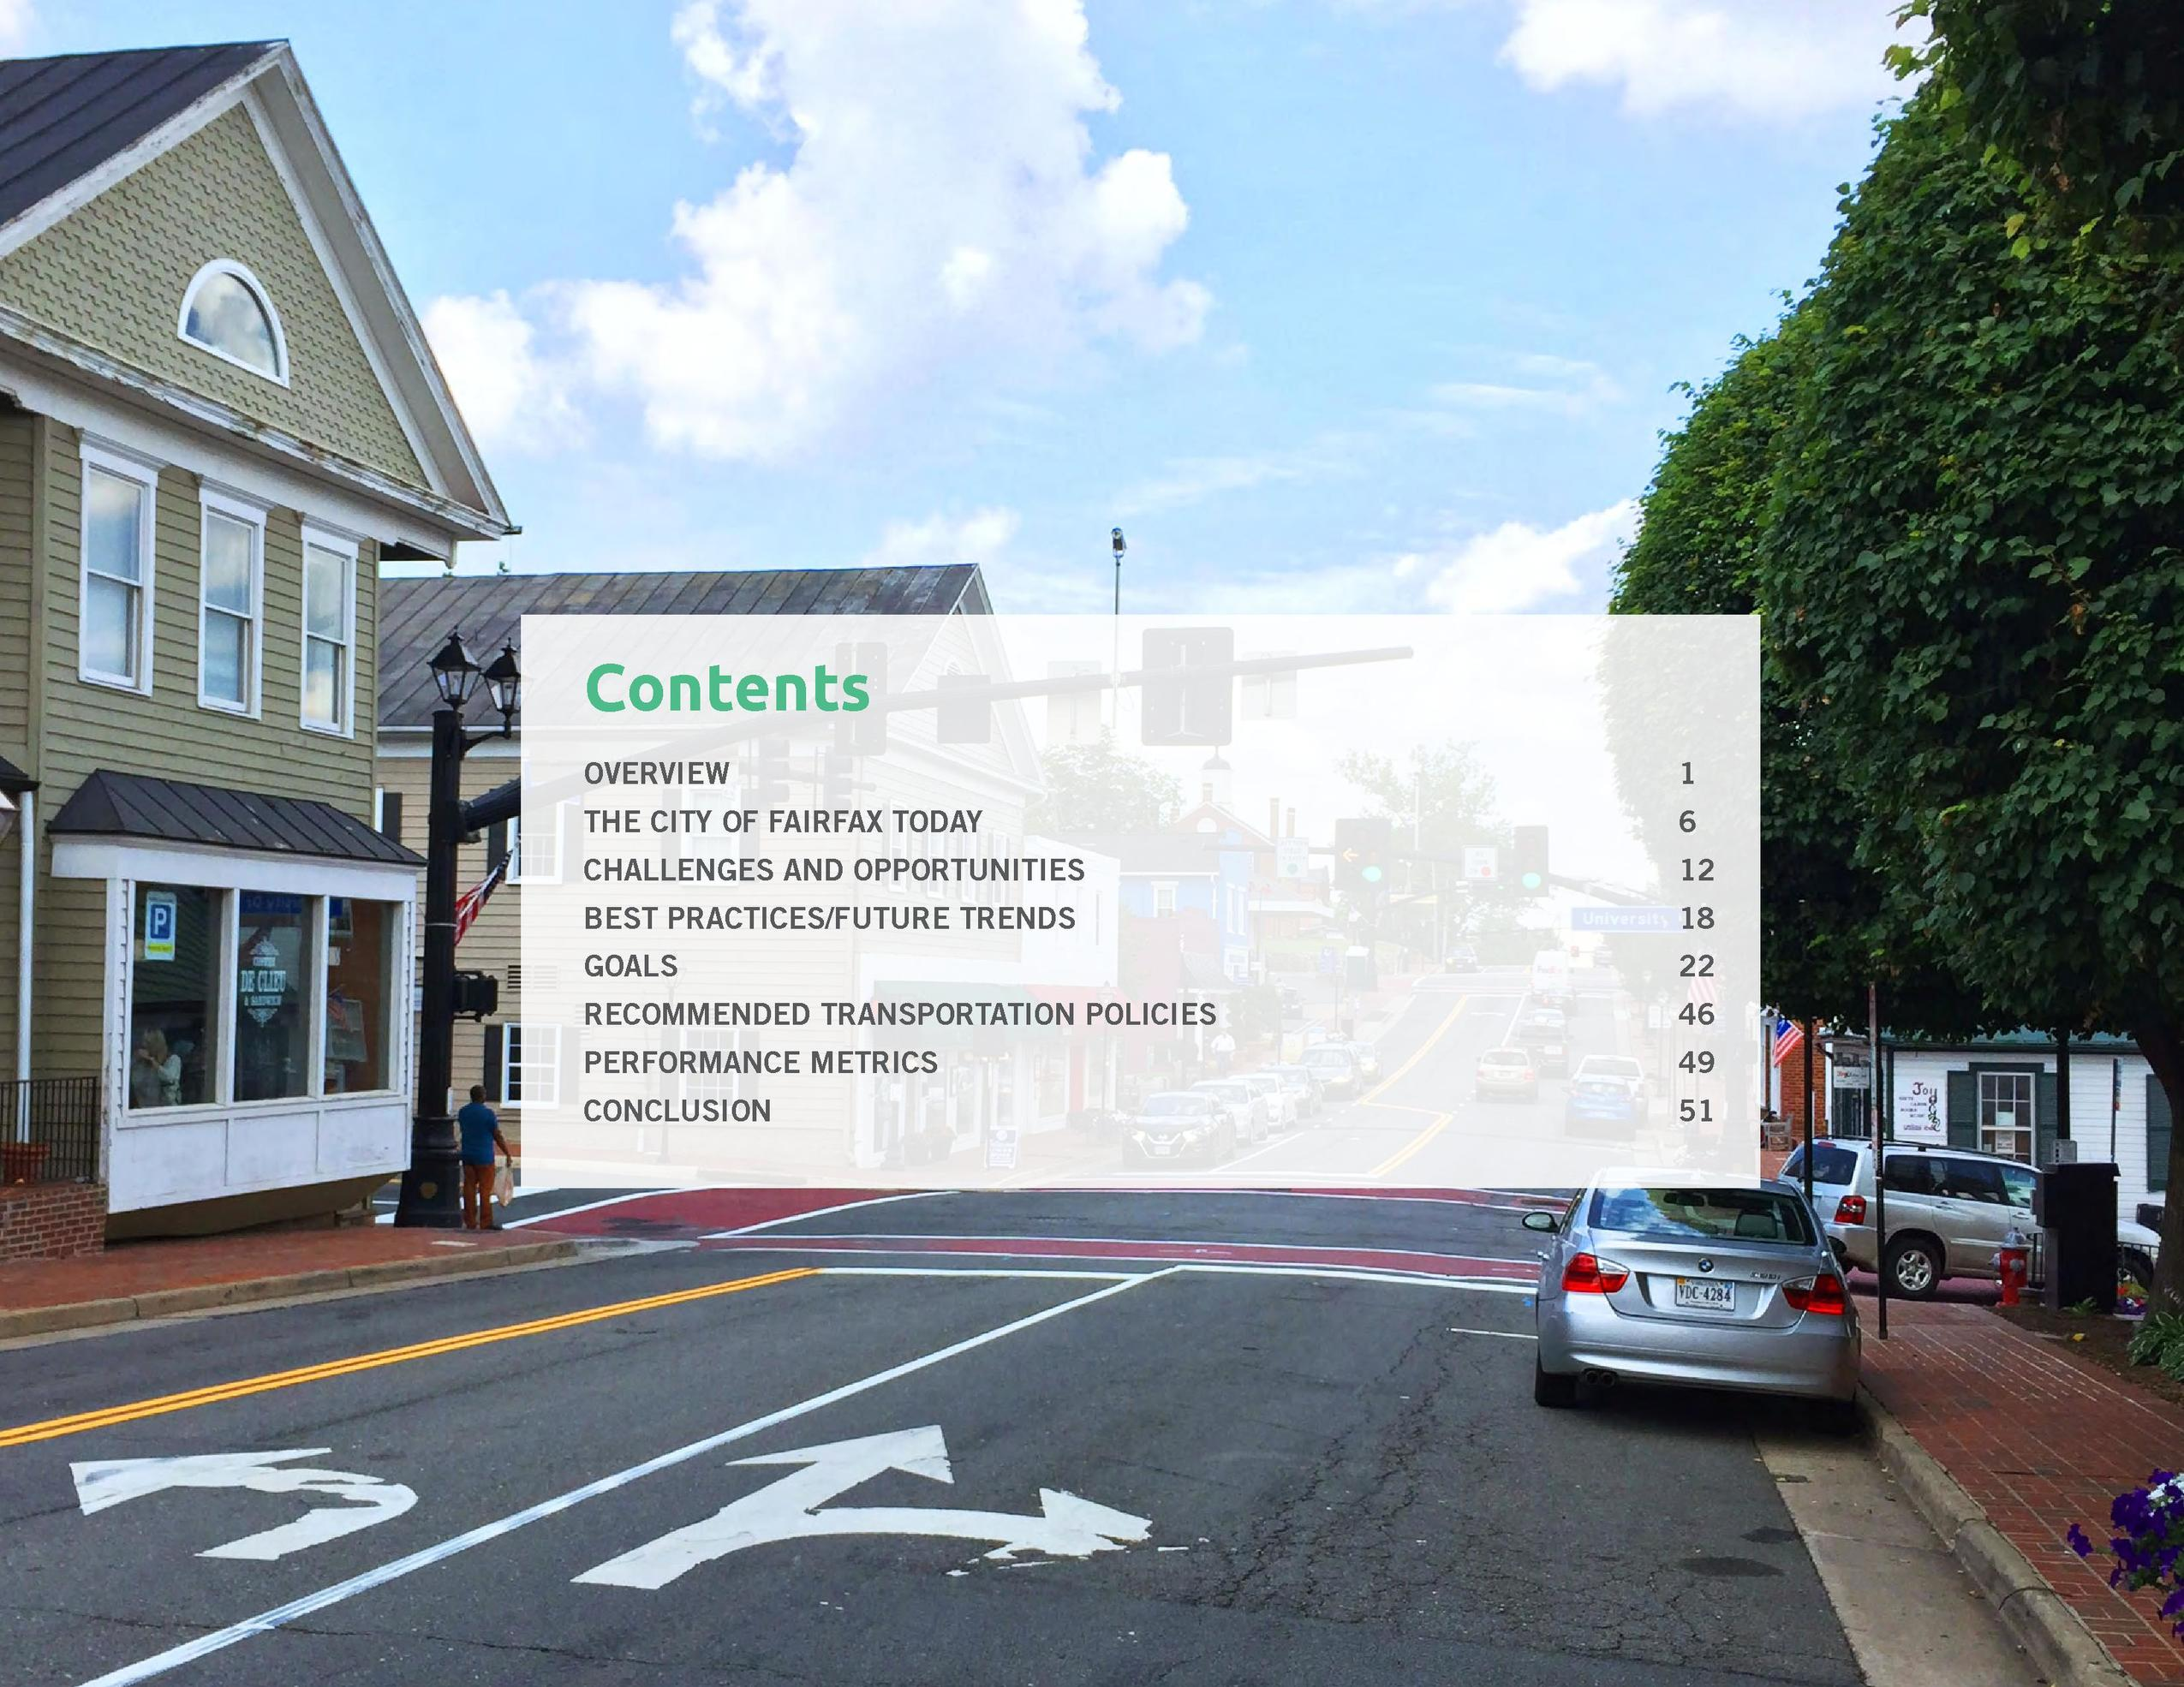 Contents OVERVIEW 1 THE CITY OF FAIRFAX TODAY   6  CHALLENGES AND OPPORTUNITIES   12  BEST PRACTICES FUTURE TRENDS   18  G...